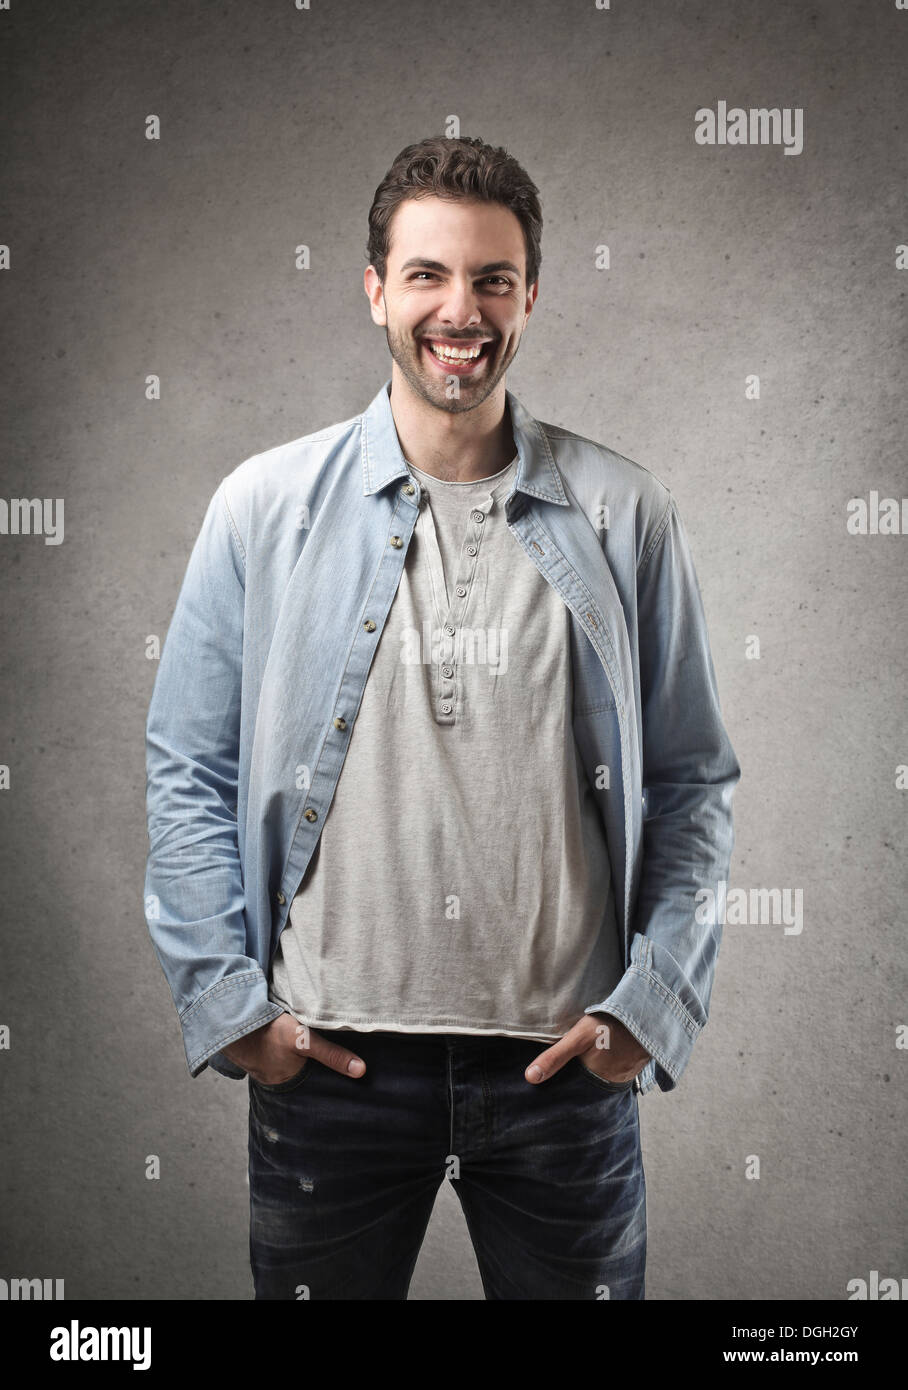 Portrait of a smiling man - Stock Image